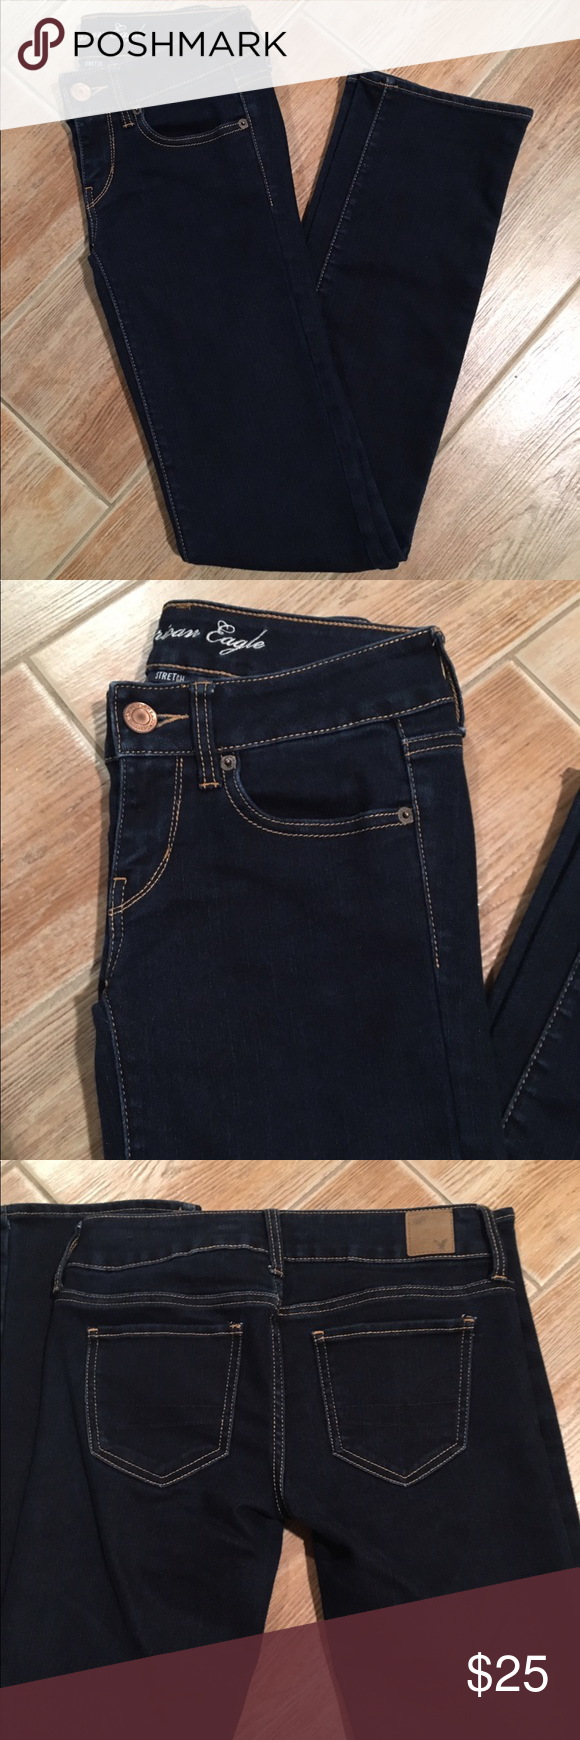 NWOT American Eagle Jeans Brand New, never worn American Eagle jeans. Perfect condition. ❤️ American Eagle Outfitters Jeans Straight Leg